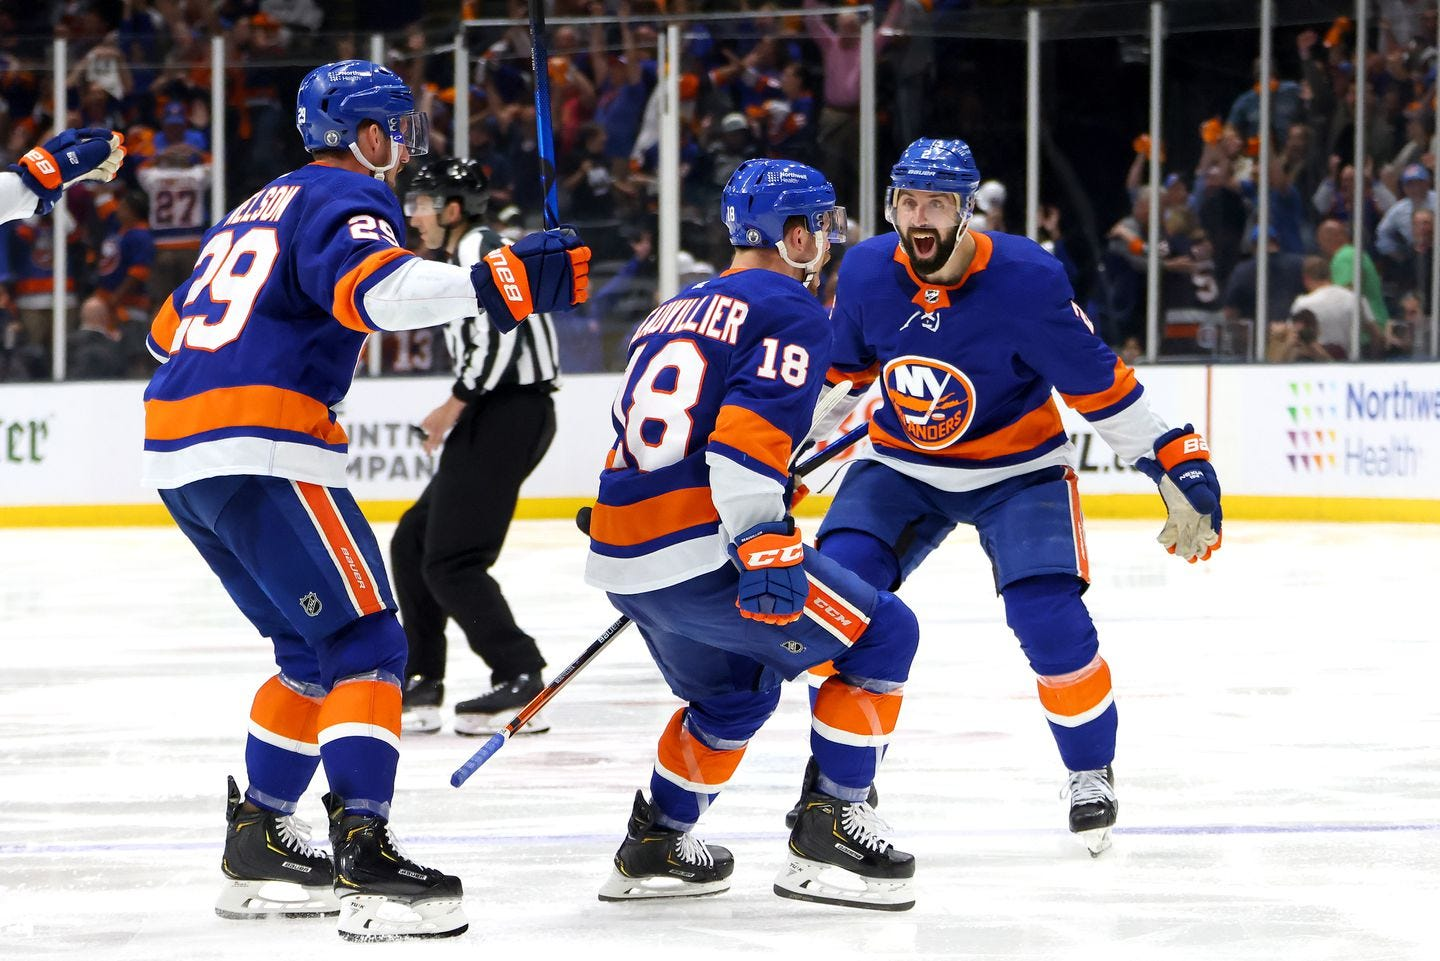 Anthony Beauvillier, Islanders stun Lightning in overtime to force Game 7 -  The Boston Globe